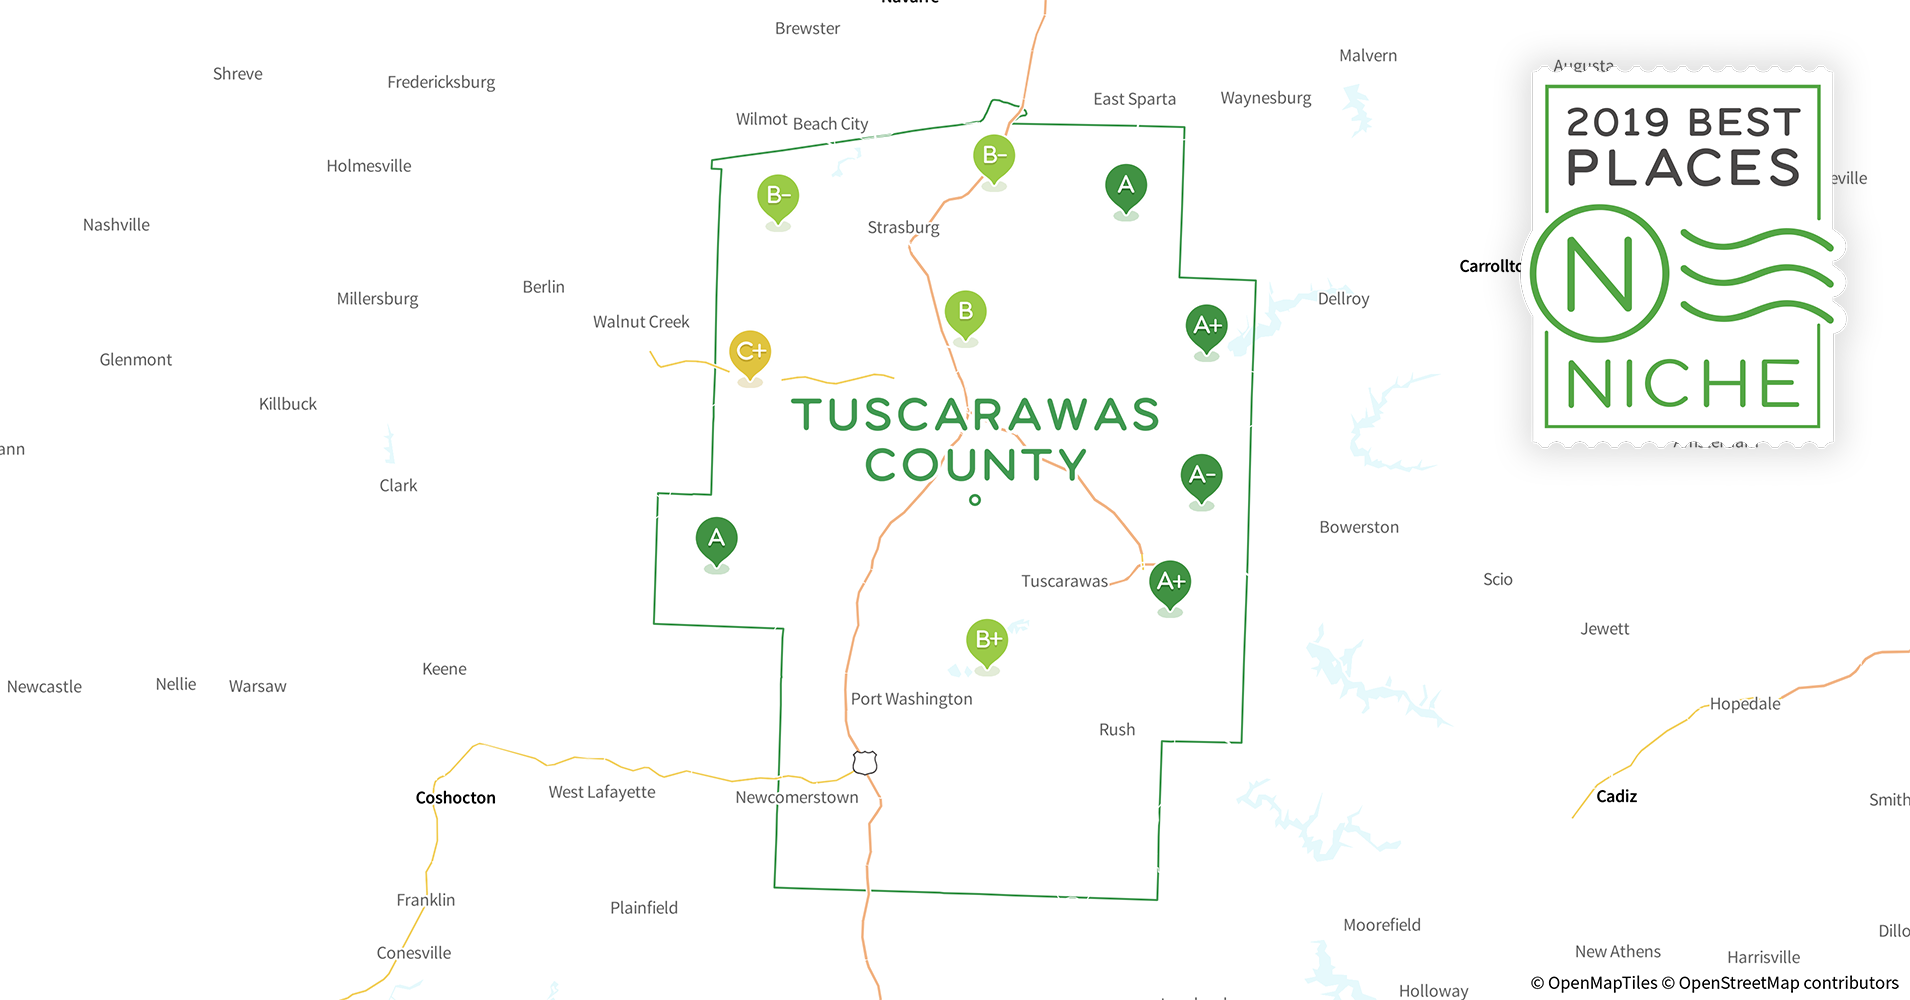 2019 Best Places to Live in Tuscarawas County, OH - Niche Ohio Tuscarawas County Map Roads on newark ohio road map, cleveland ohio road map, dublin ohio road map, north canton ohio road map, dayton ohio road map, marietta ohio road map, ashtabula county township map, ashland ohio road map, tuscarawas county ohio fair, marion ohio road map, ashtabula county road map, youngstown ohio road map, springfield ohio road map, lancaster ohio road map, hudson ohio road map, toledo ohio road map, dover ohio road map, lima ohio road map, cincinnati ohio road map, stark county ohio section map,